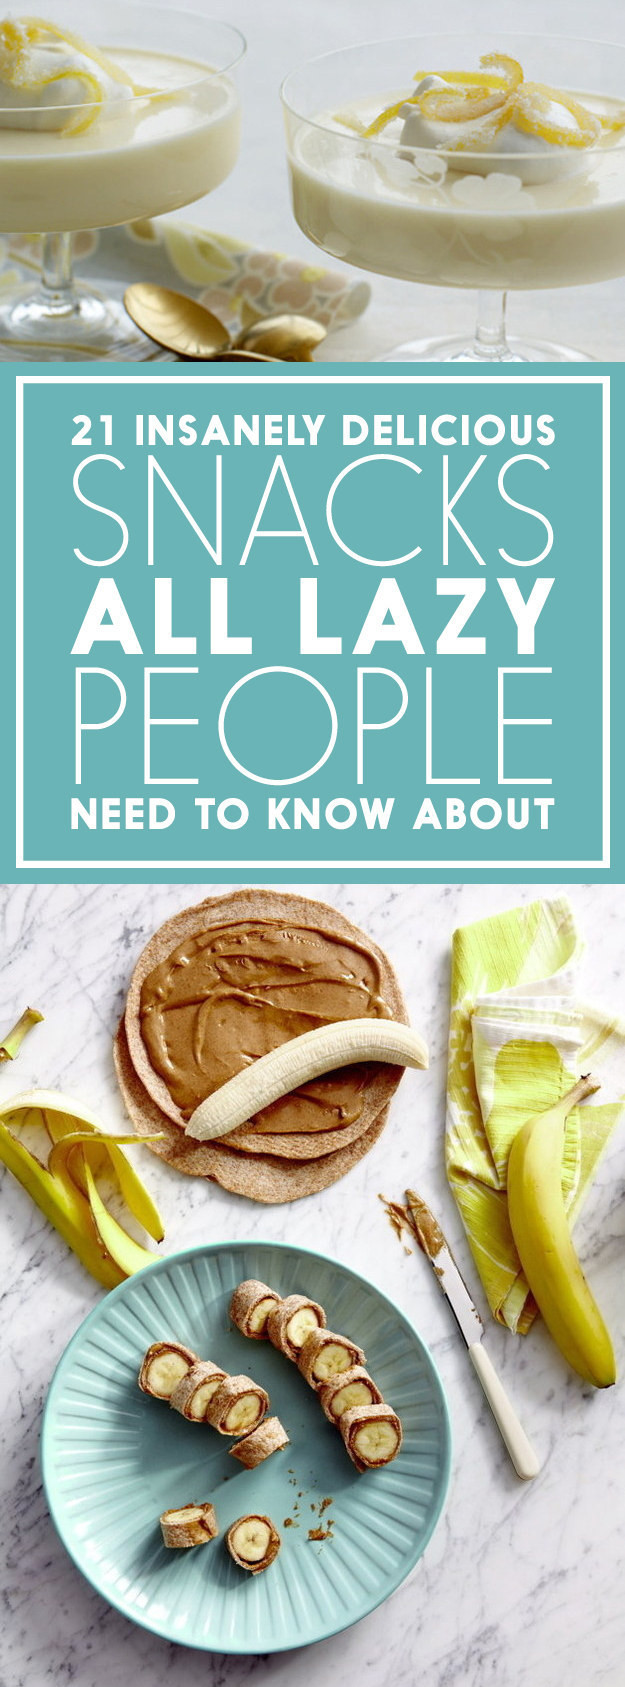 Healthy Delicious Snacks  21 Insanely Simple And Delicious Snacks Even Lazy People